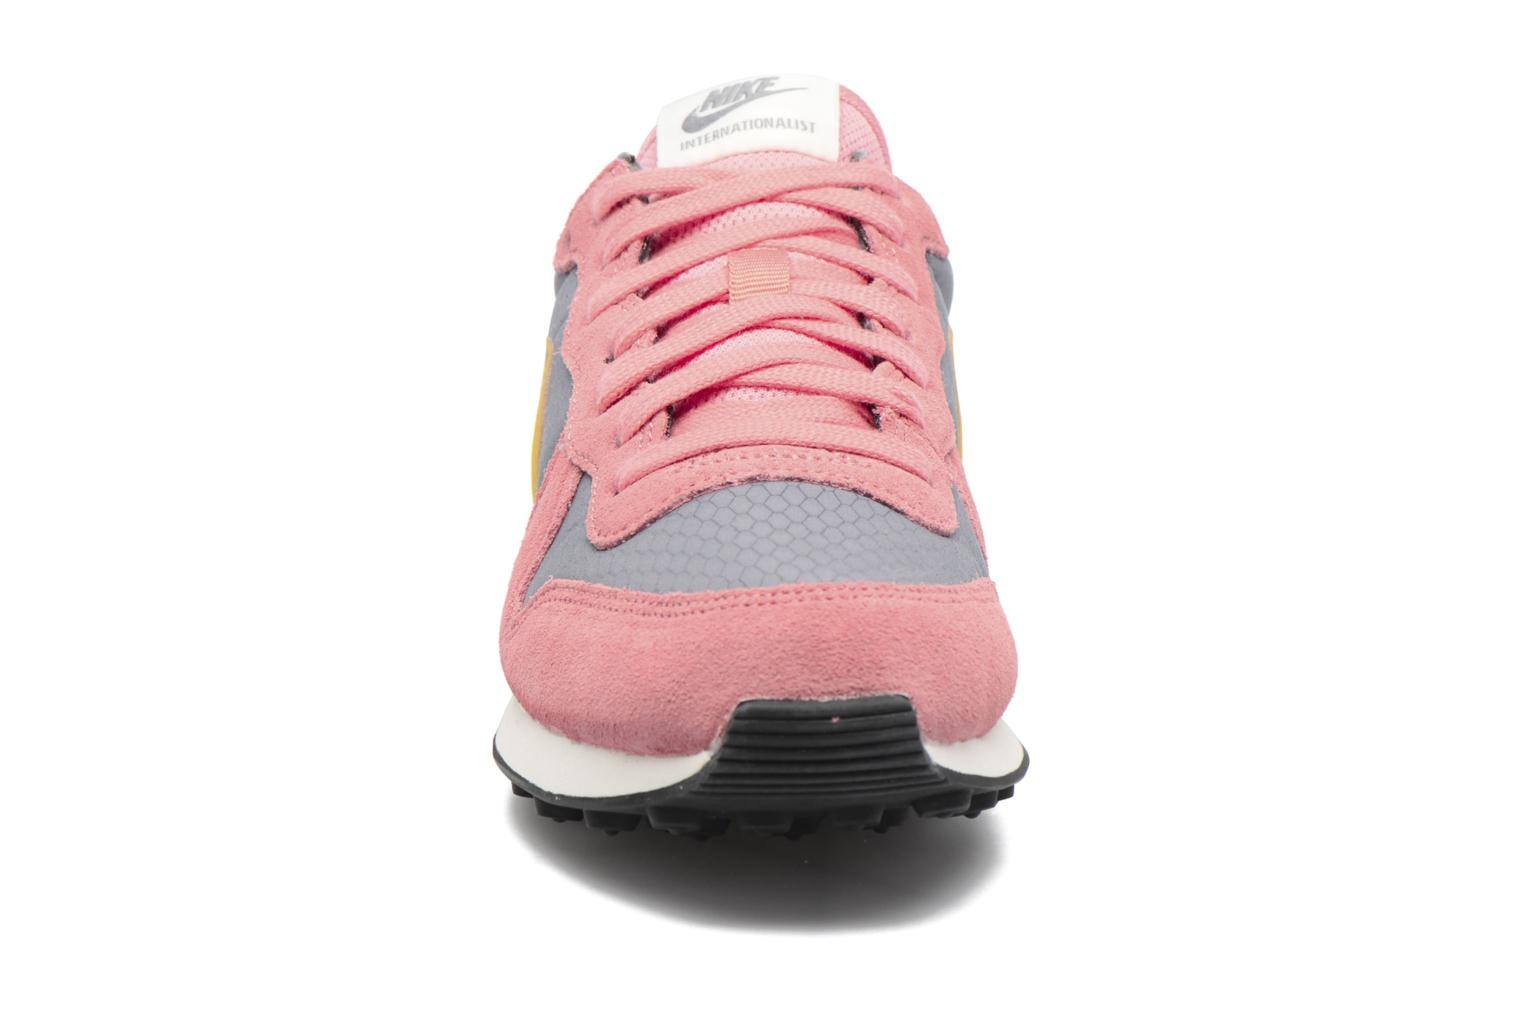 Sneakers Nike Wmns Internationalist Pink se skoene på